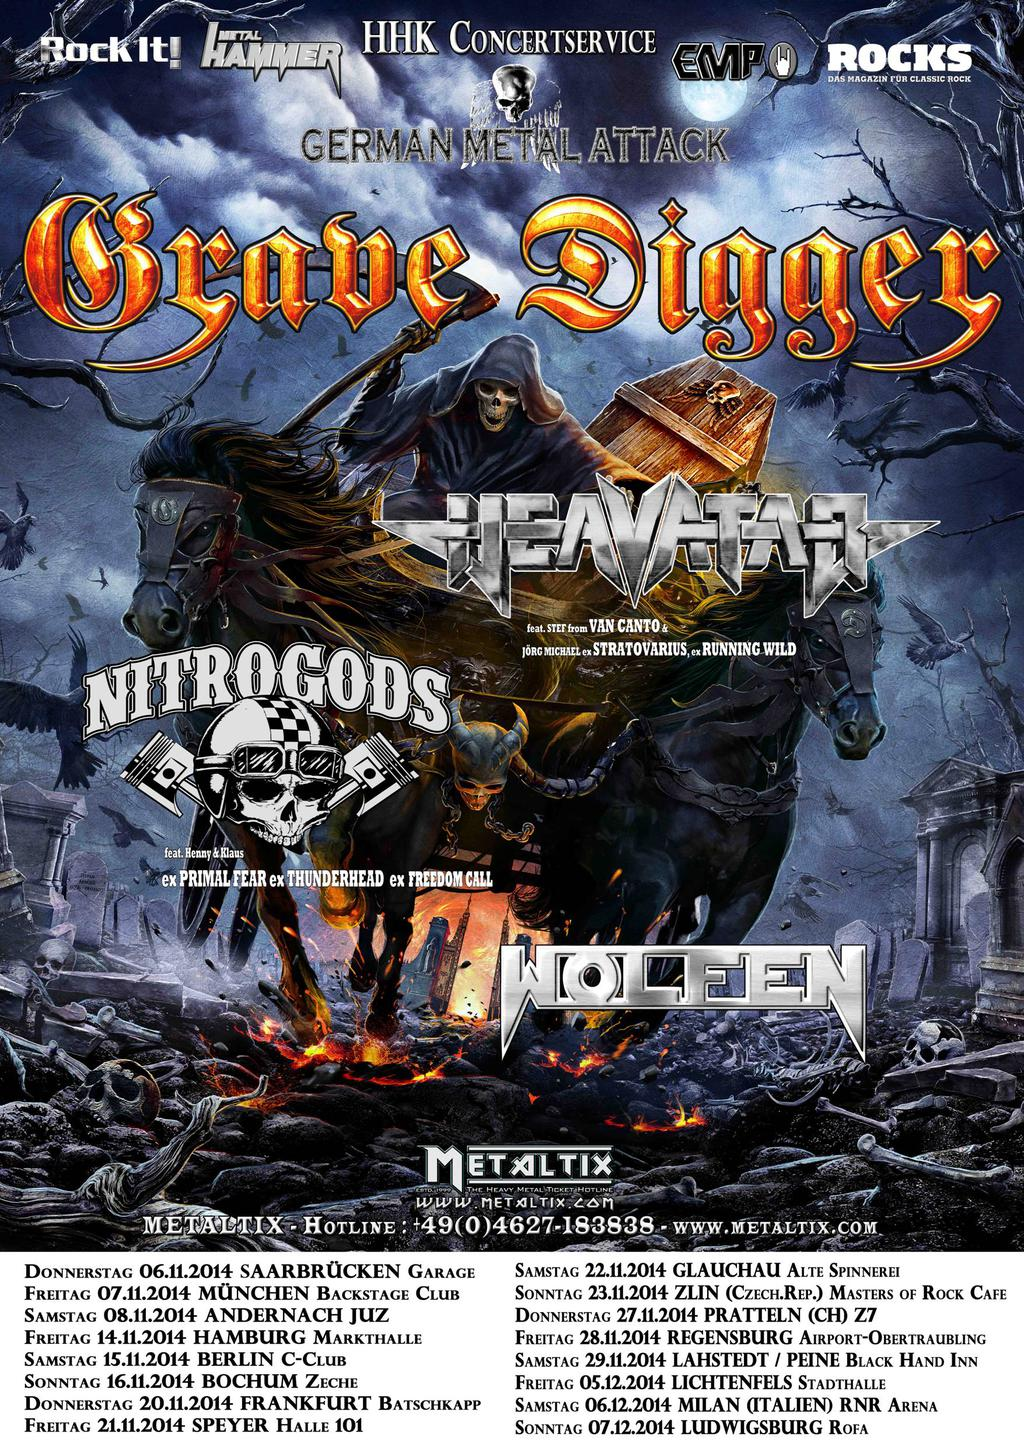 German Metal Attack III